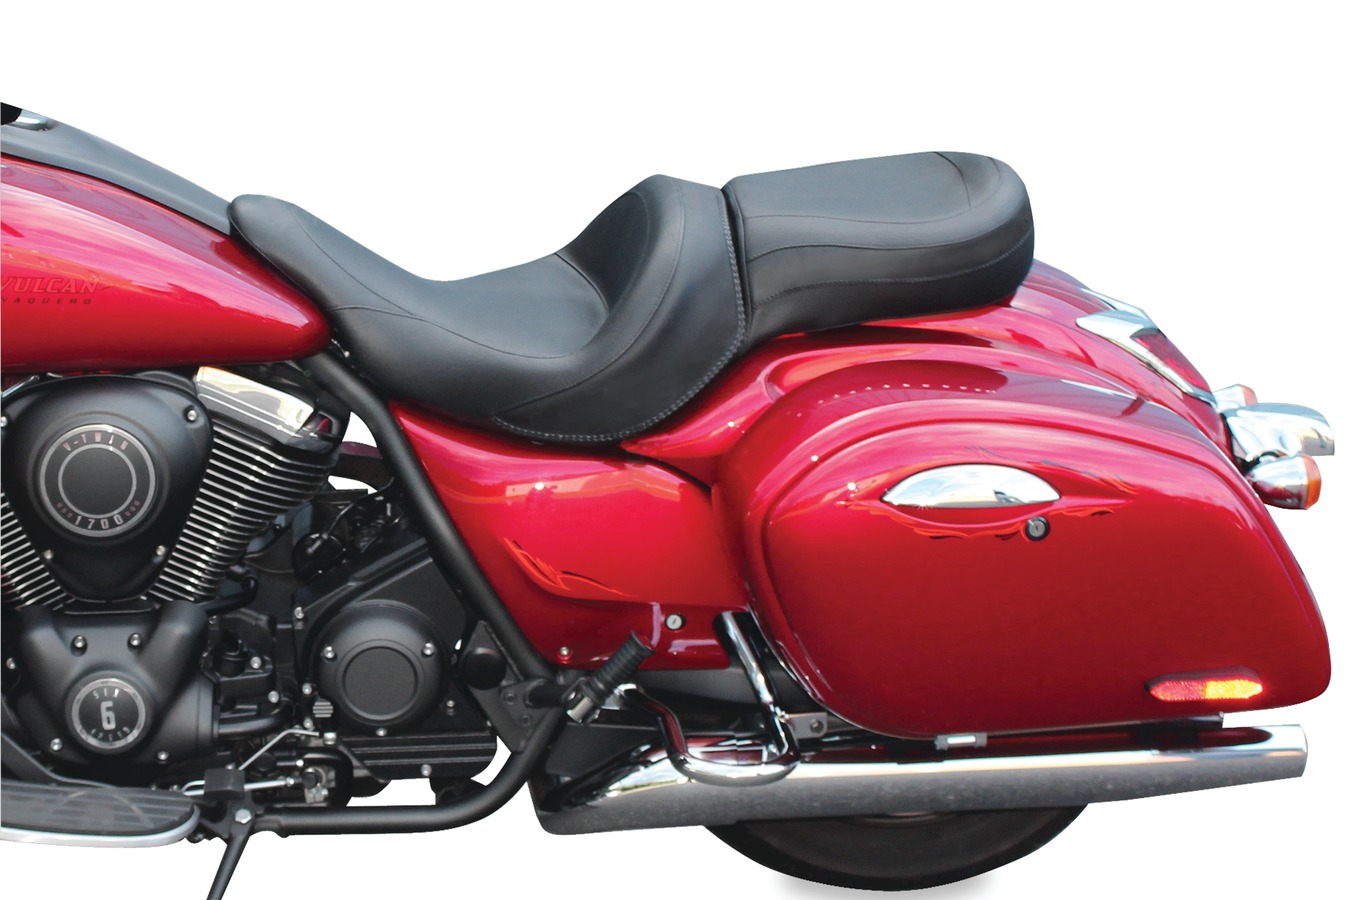 Standard Touring One-Piece Seat for Kawasaki Vulcan 1700 Vaquero 2011-